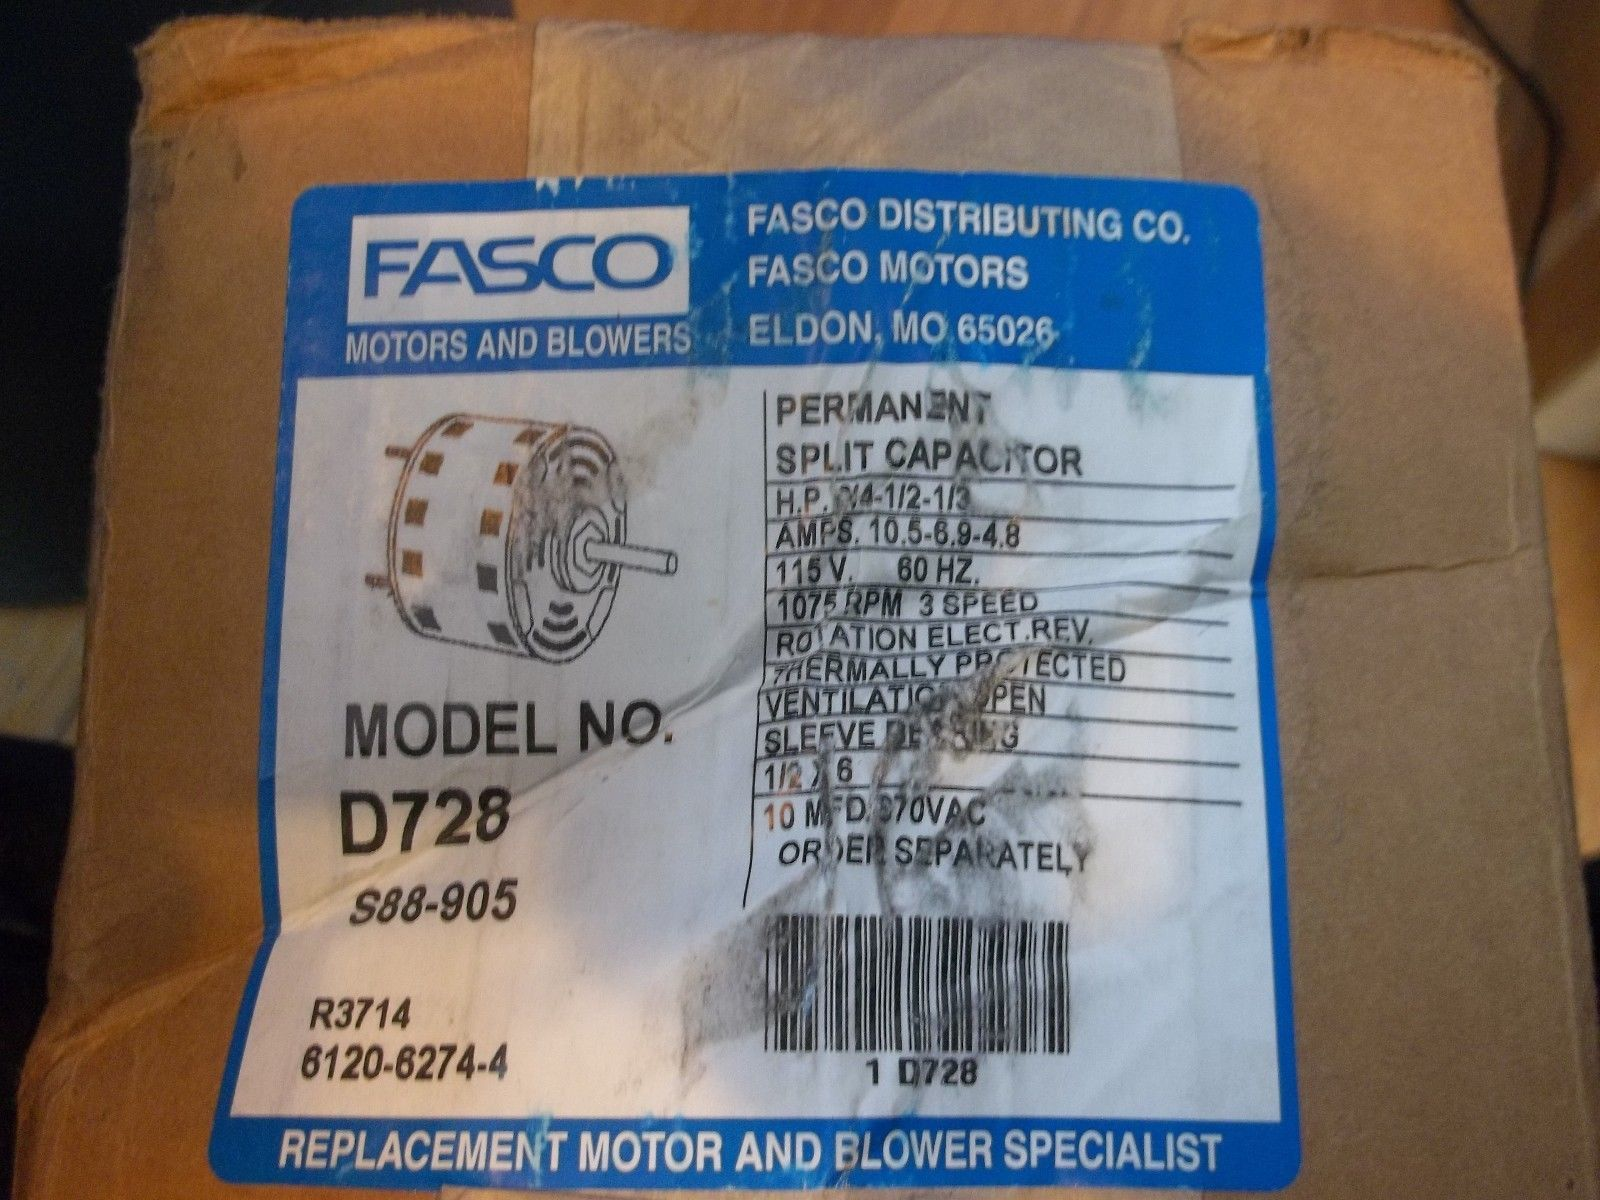 Fasco Model No. D728 3-speed 3/4-1/2-1/3 and 50 similar items